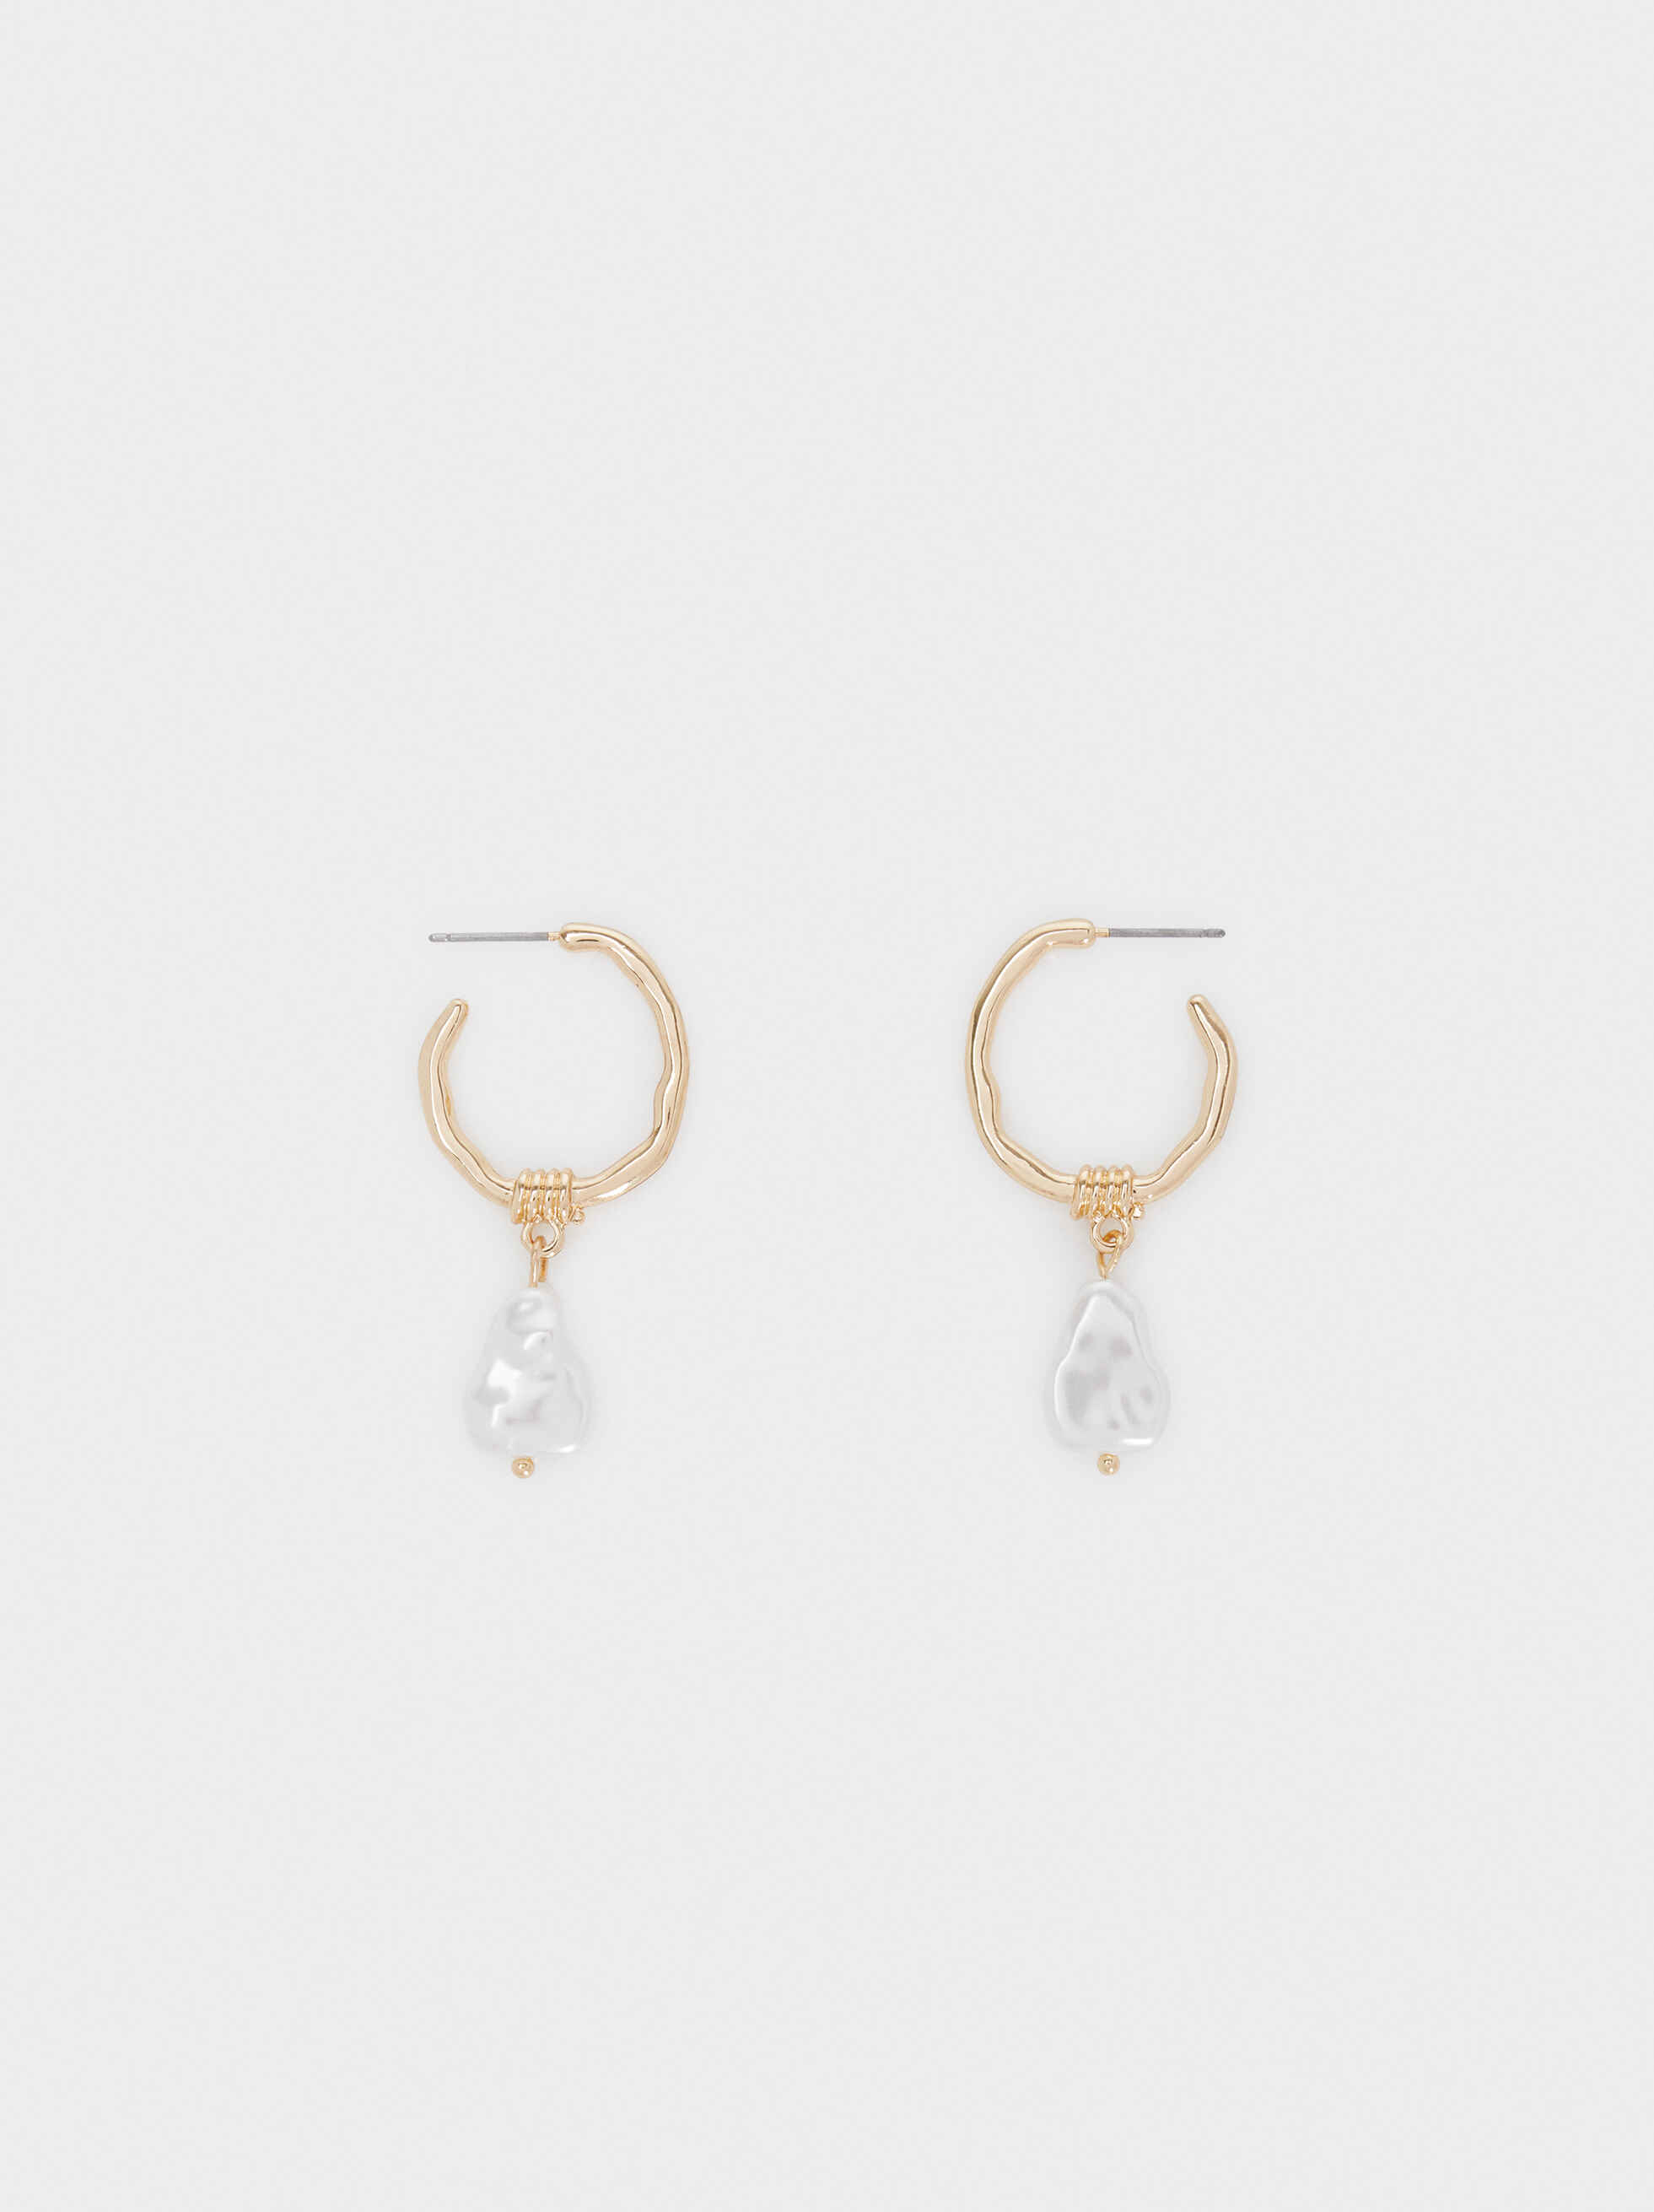 Medium Gold Earrings With Faux Pearl Detail, Golden, hi-res